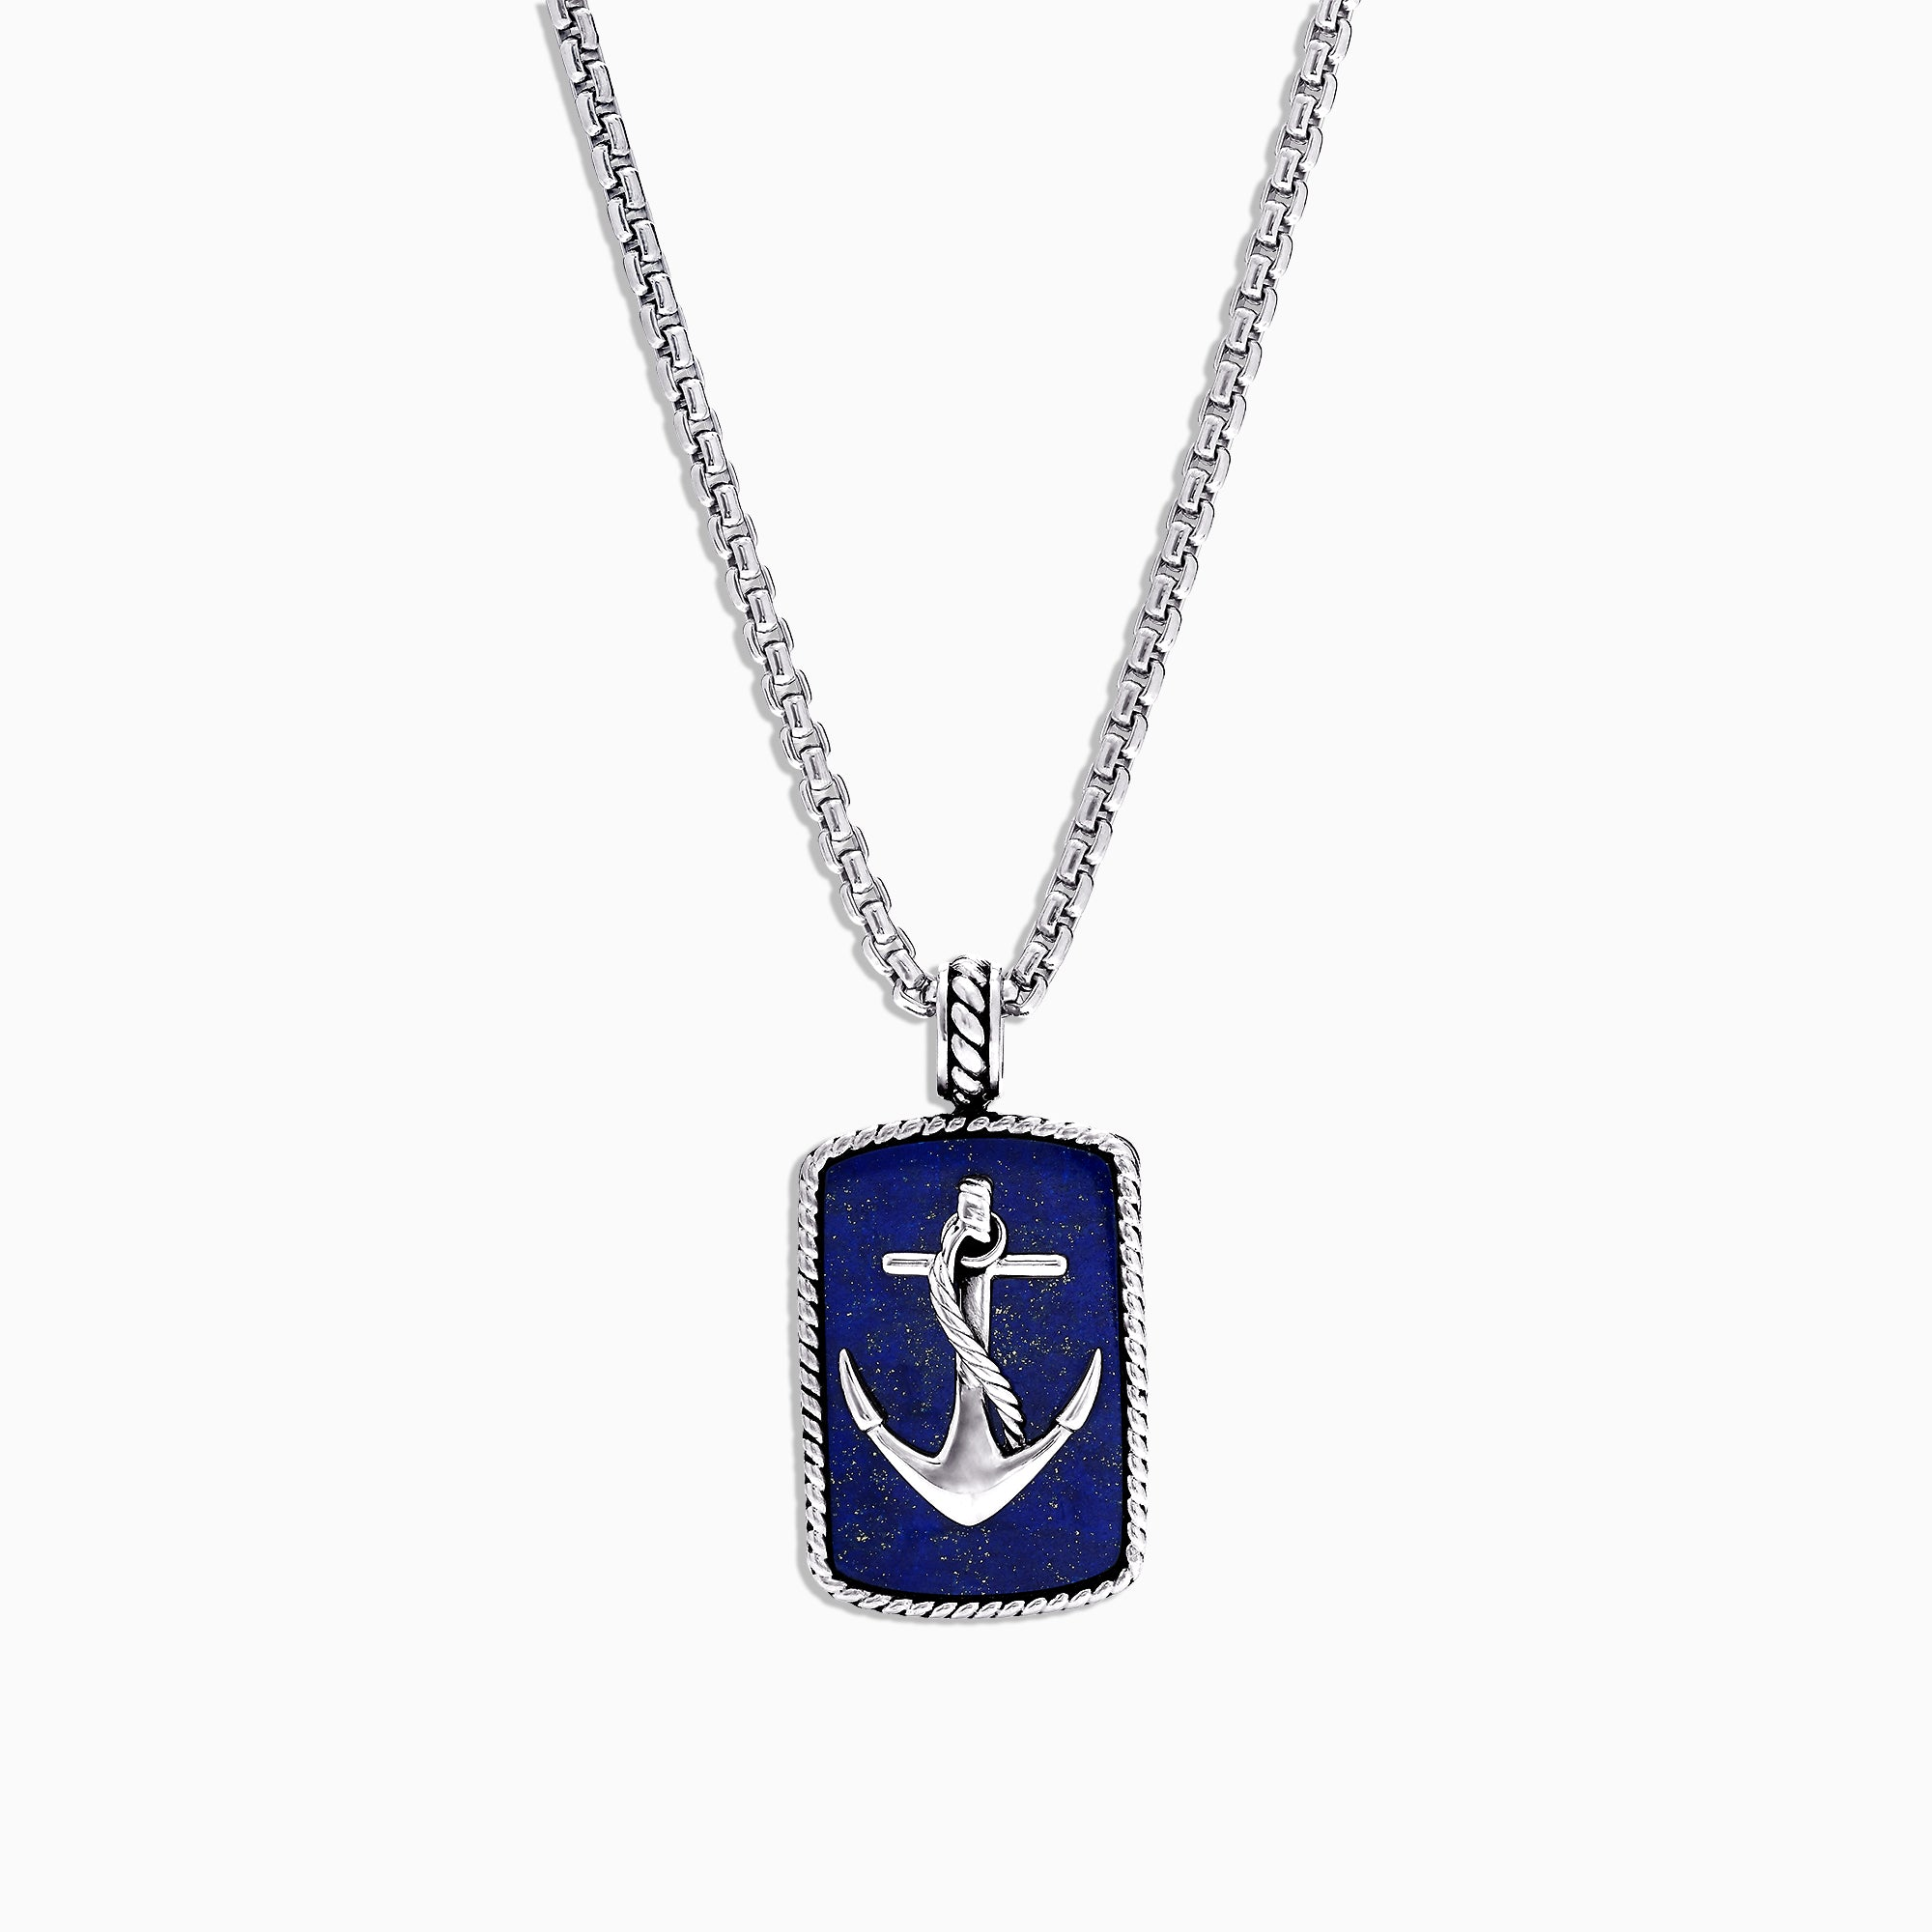 Effy Men's Sterling Silver Lapis Lazuli Anchor Dog Tag Pendant, 18.85 TCW